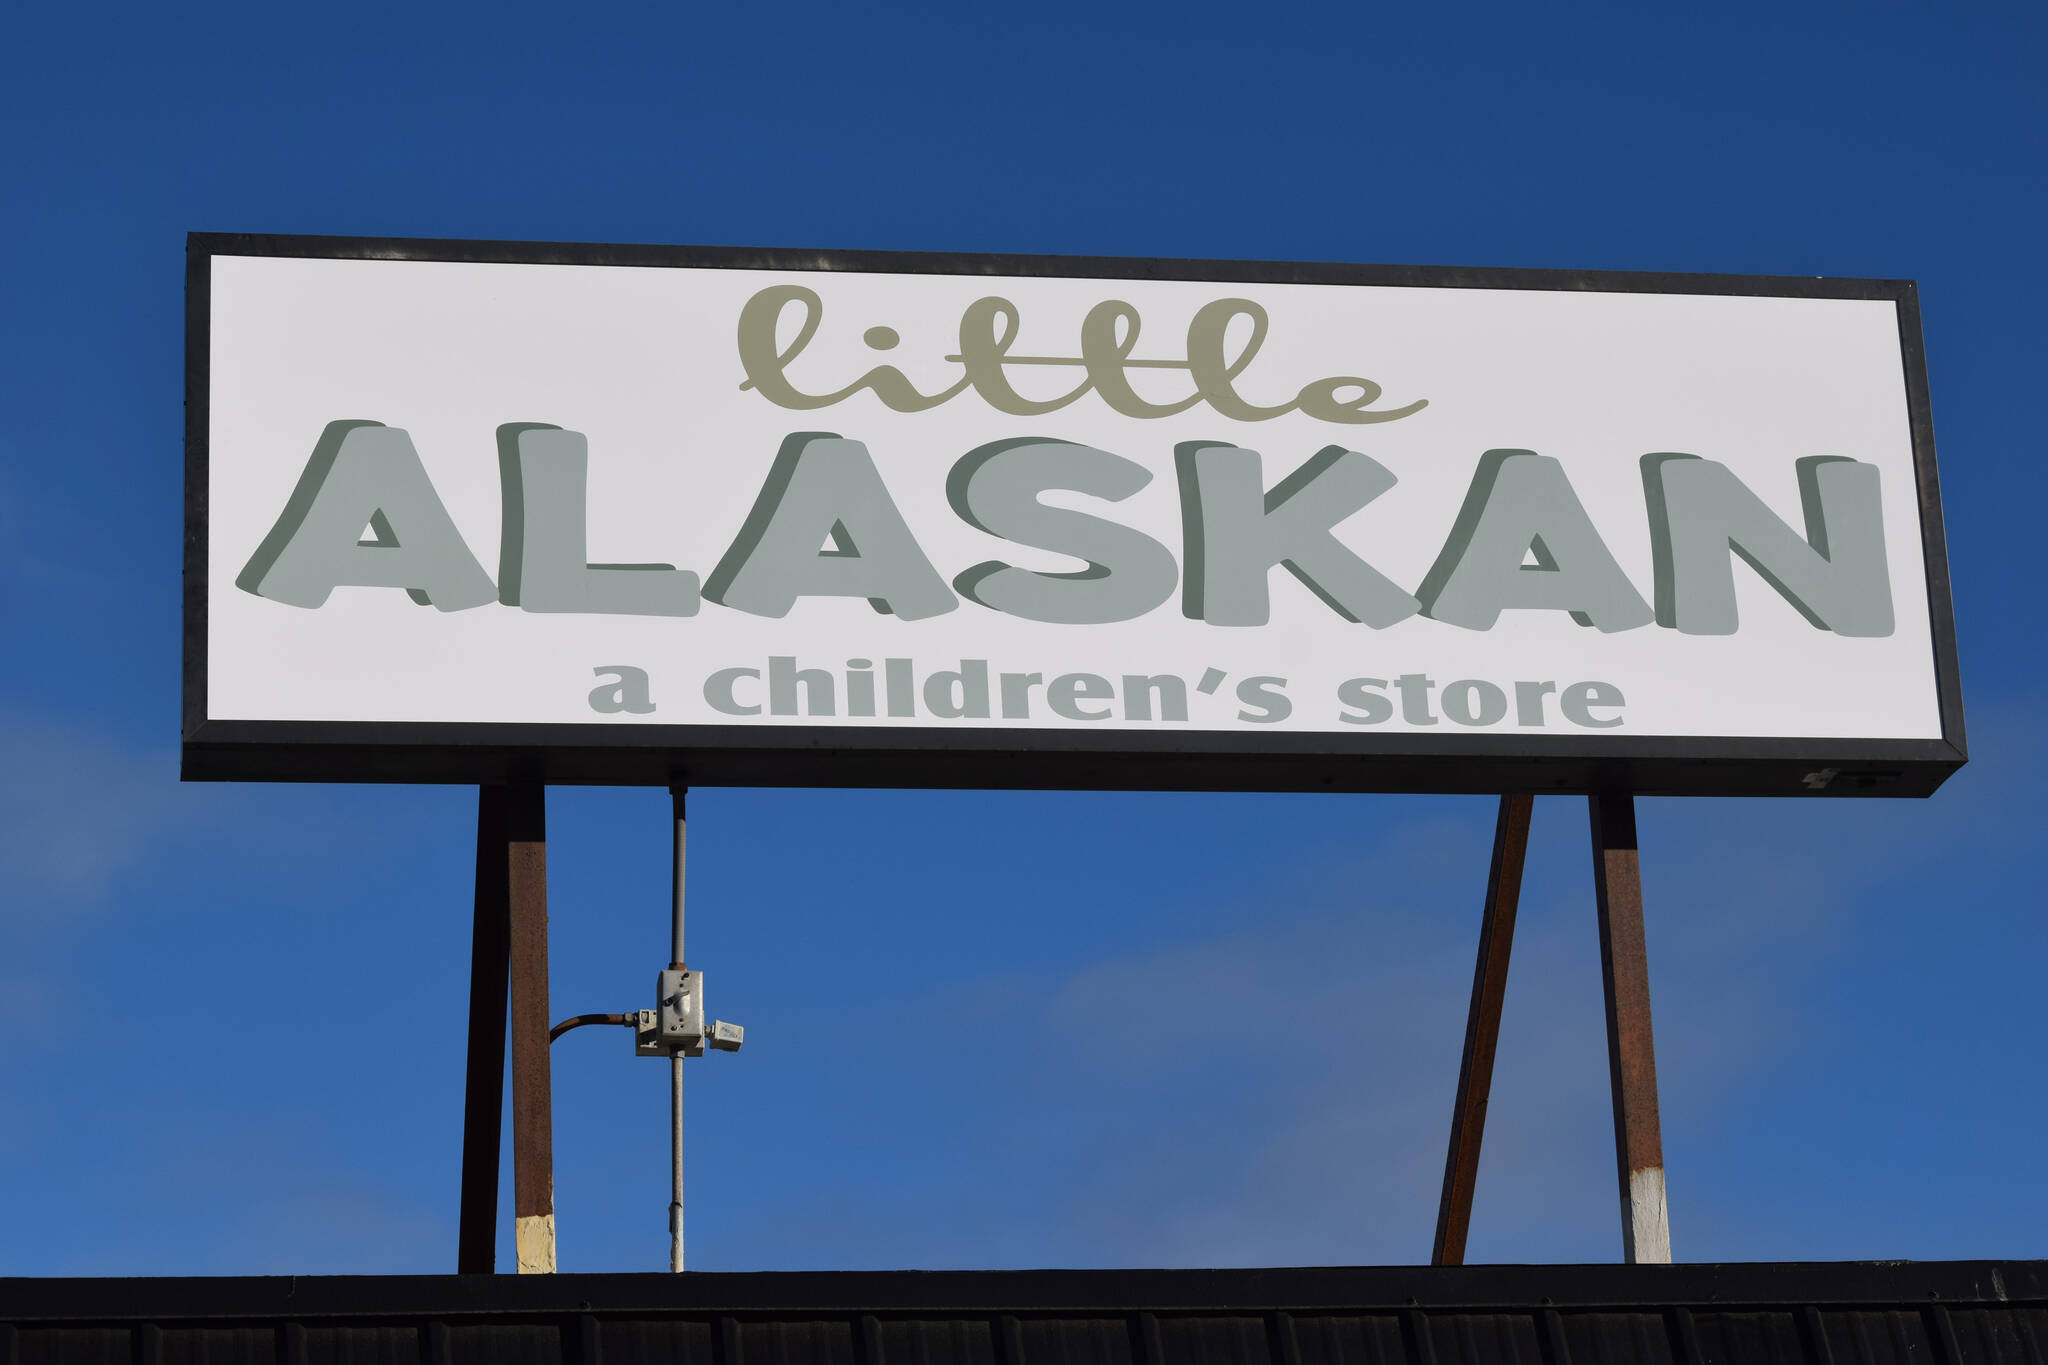 The Little Alaskan children's store is seen in Kenai on Sunday, Oct. 24, 2021. Located where Bargain Basement used to be in Kenai, the shop opened this weekend. (Camille Botello/Peninsula Clarion)